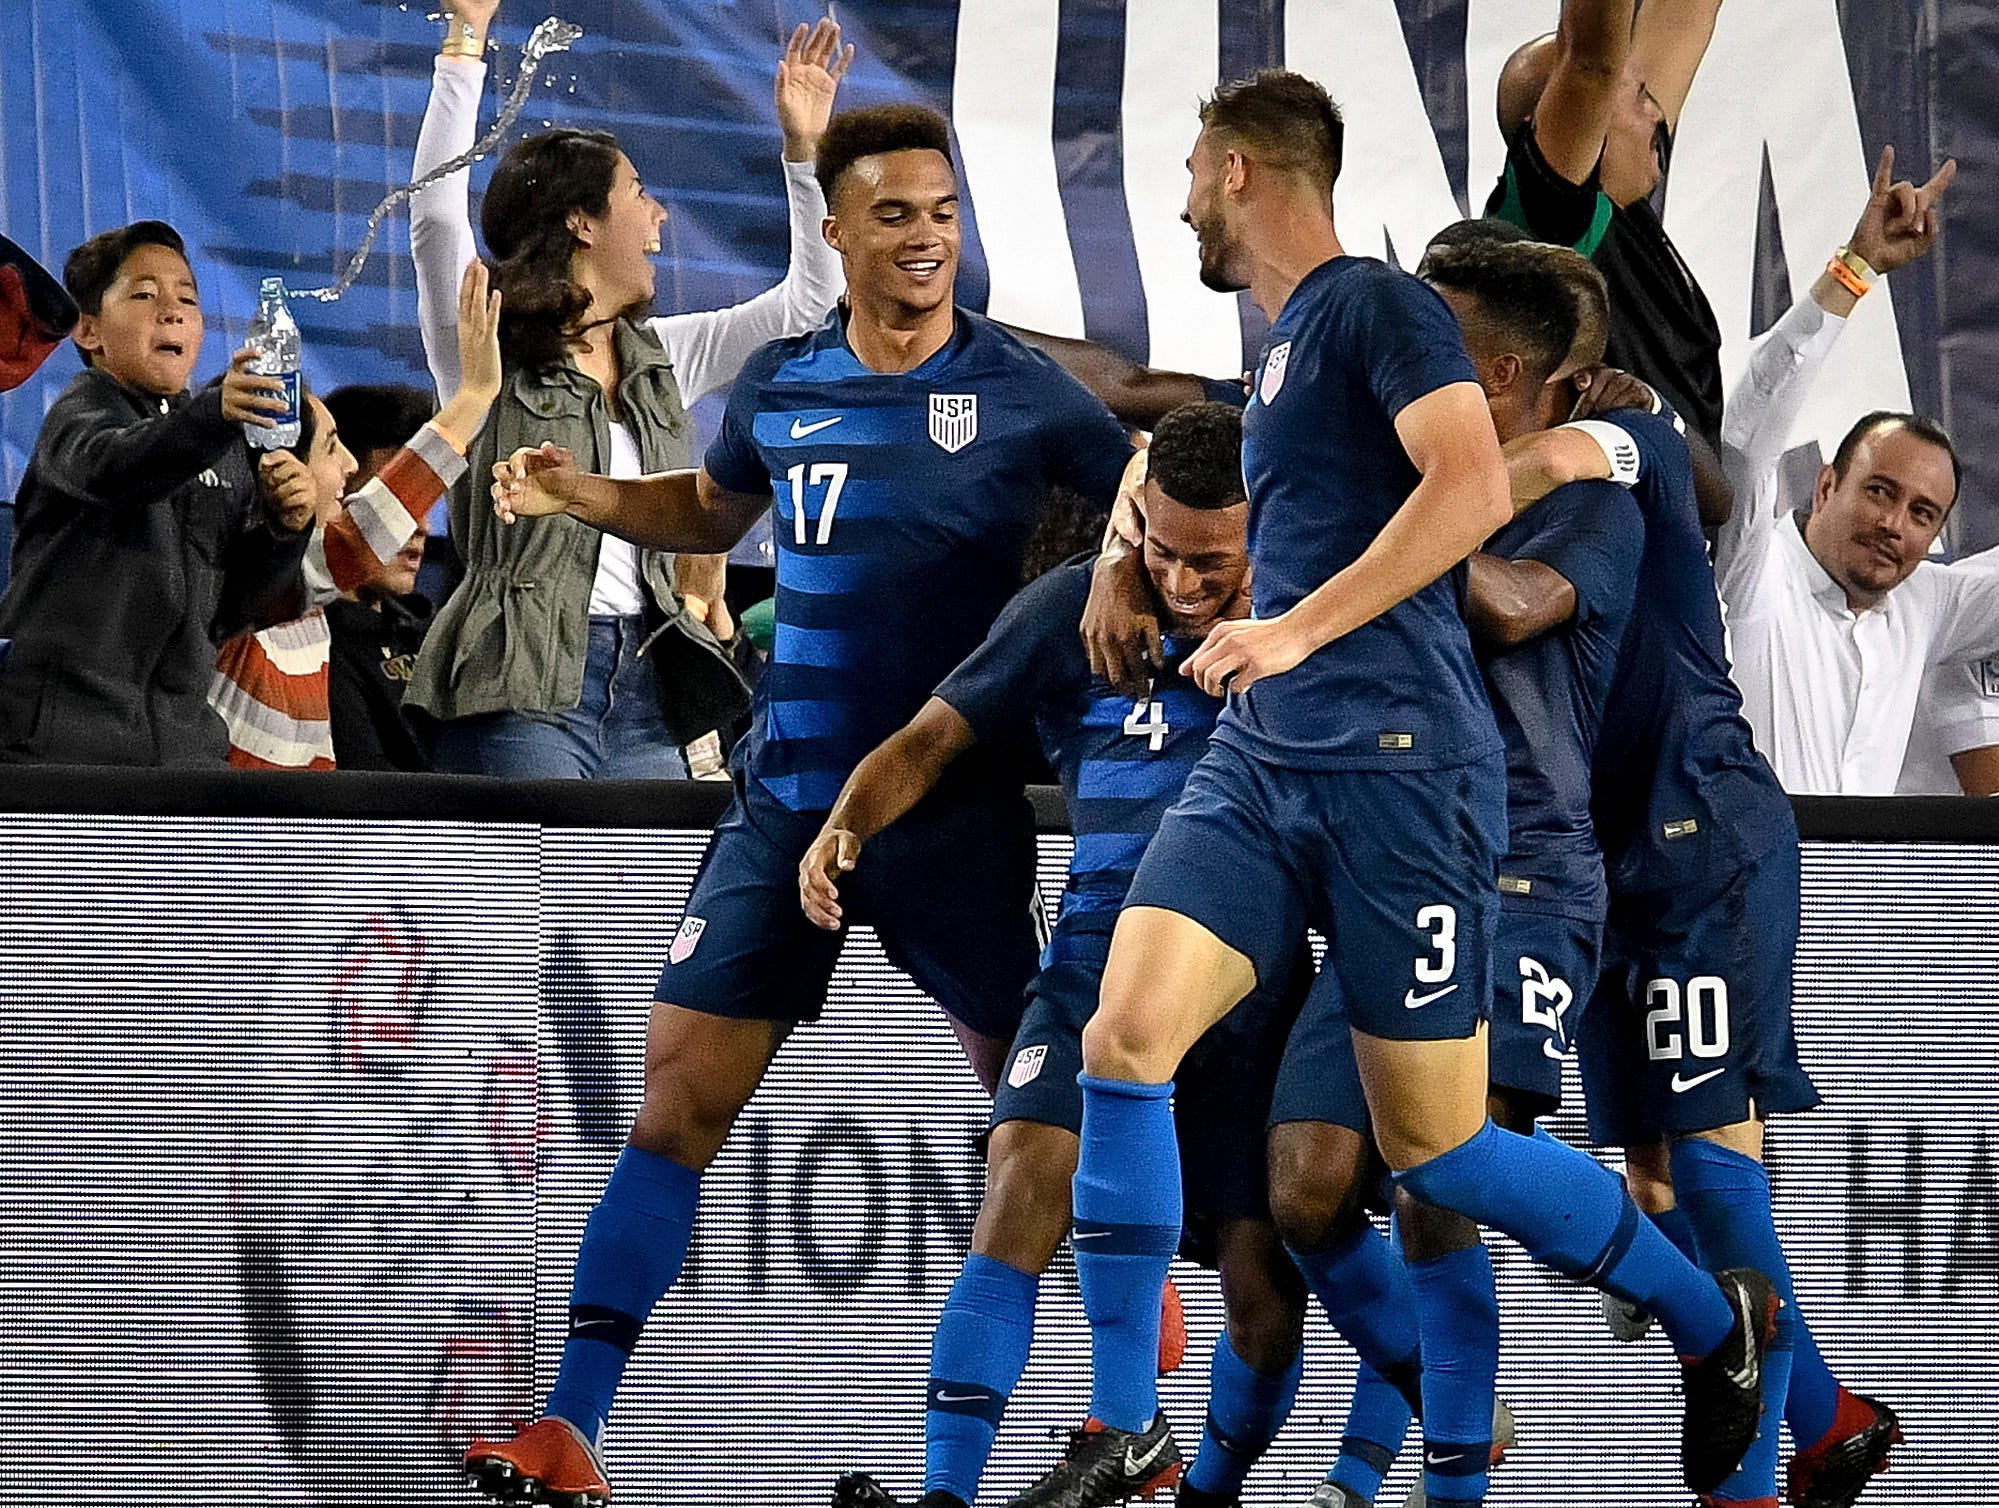 USA midfielder Tyler Adams (4) celebrates scoring against Mexico during the second half at Nissan Stadium in Nashville, Tenn., Tuesday, Sept. 11, 2018.